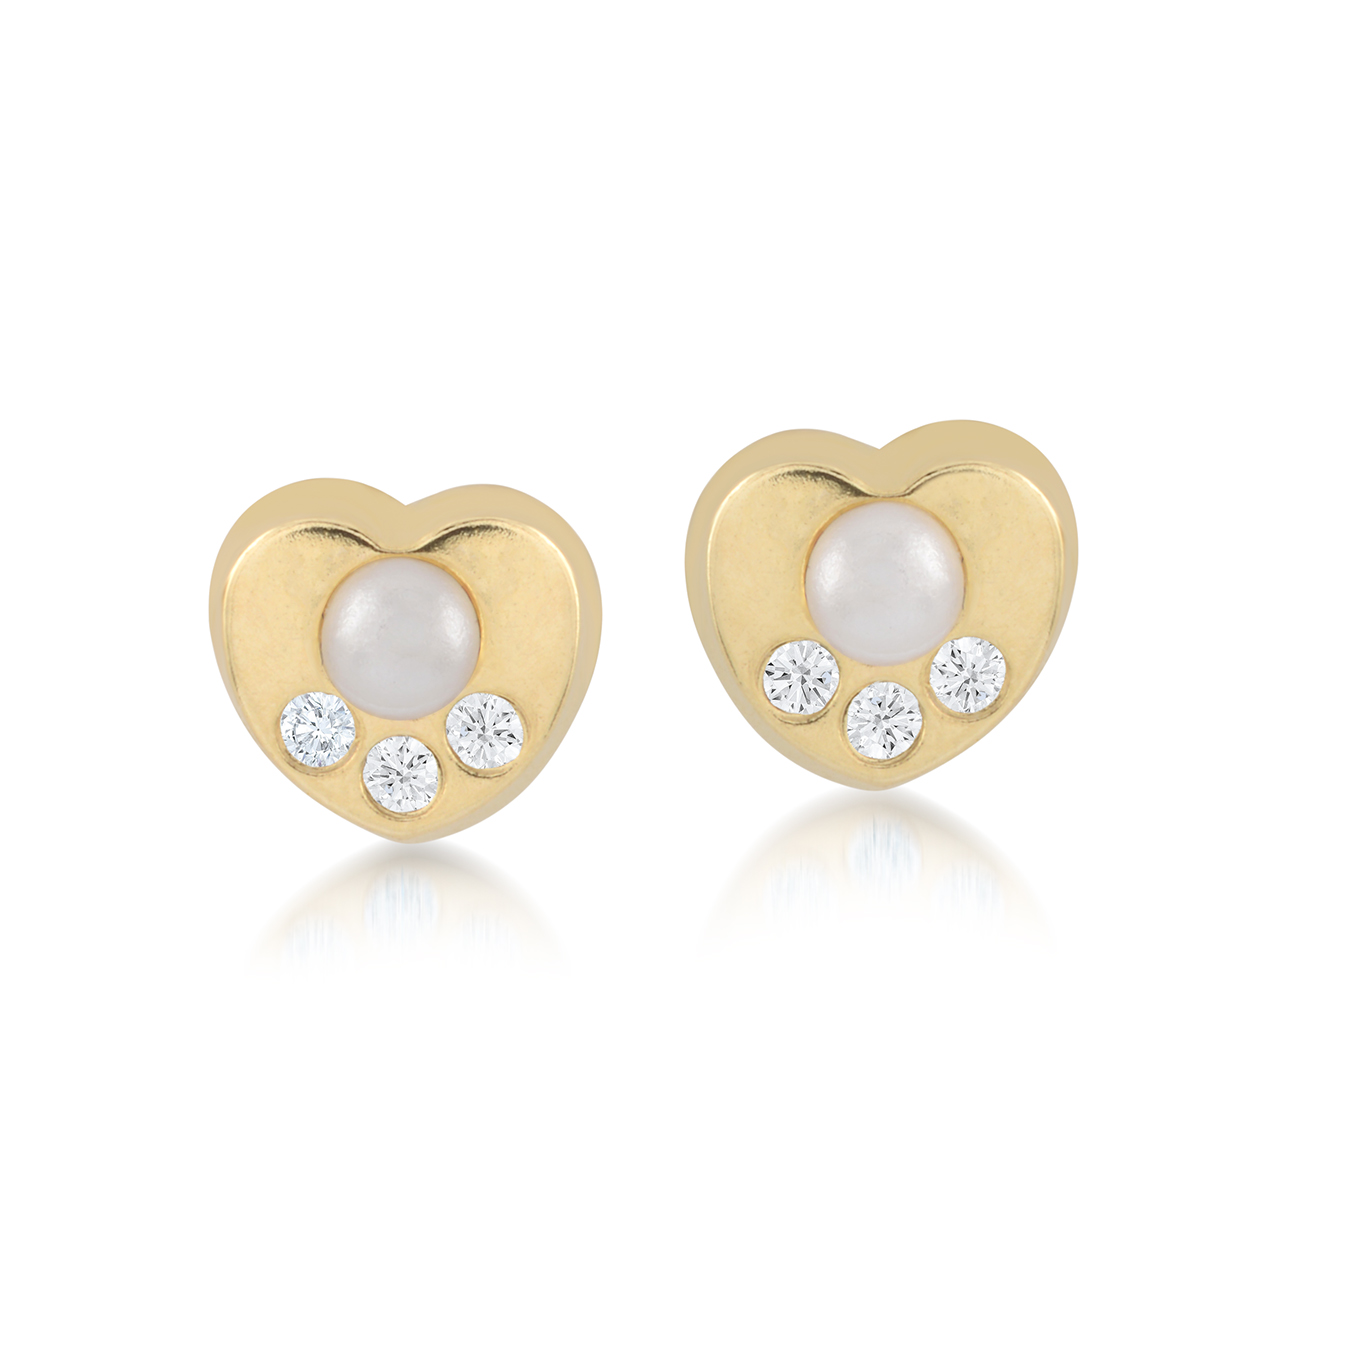 Heart stud earrings for babies with cubic zirconia and pearls - 10K yellow Gold